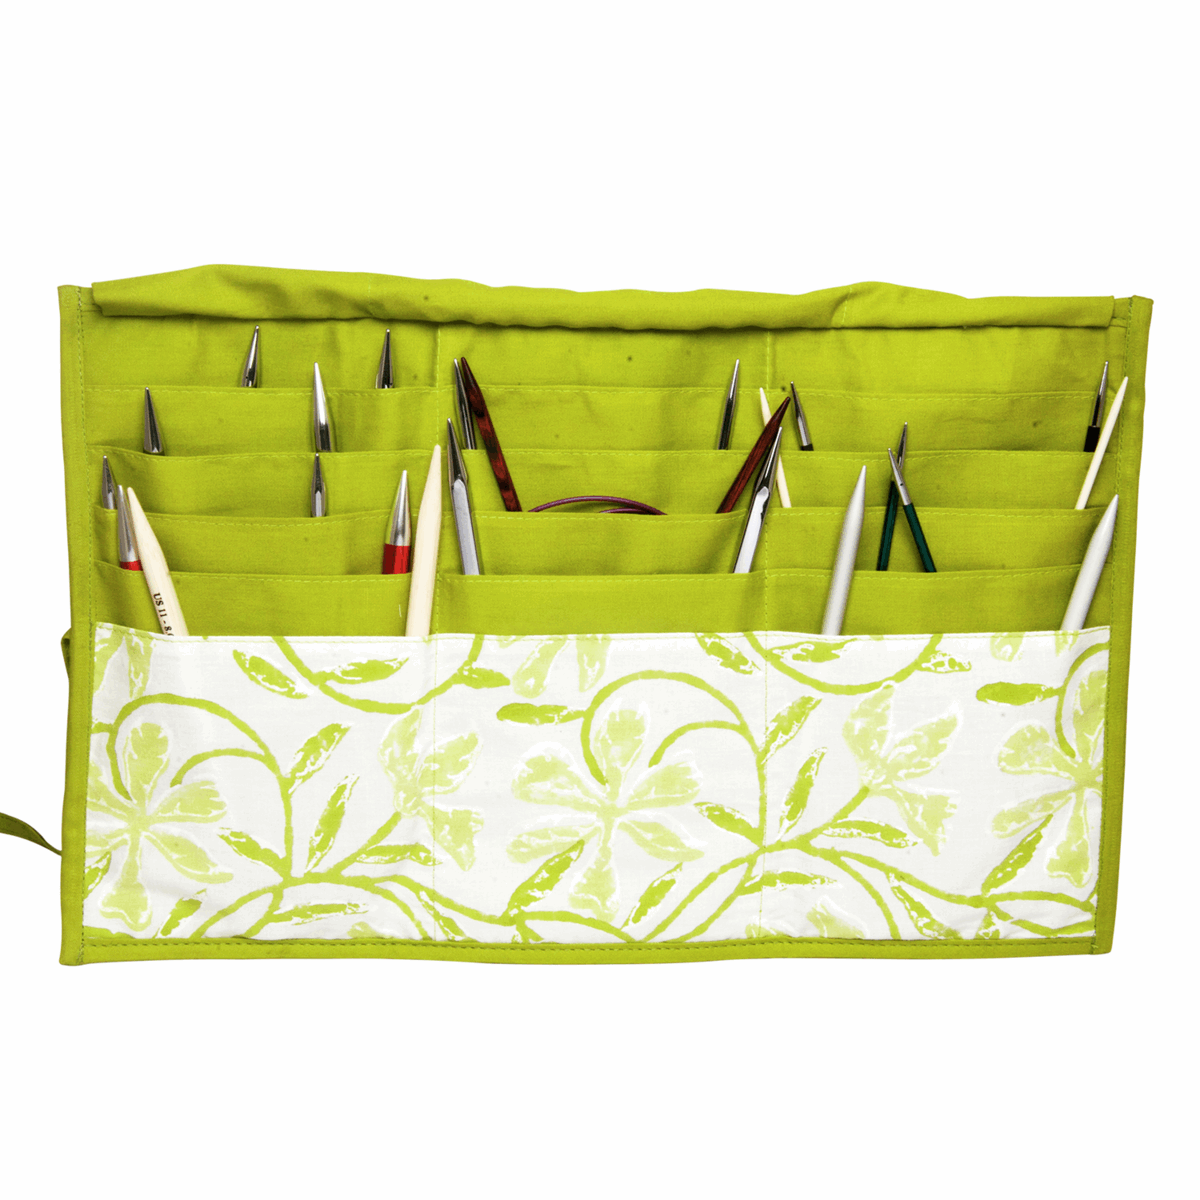 Picture of Greenery: Needle Case: Fixed Circular